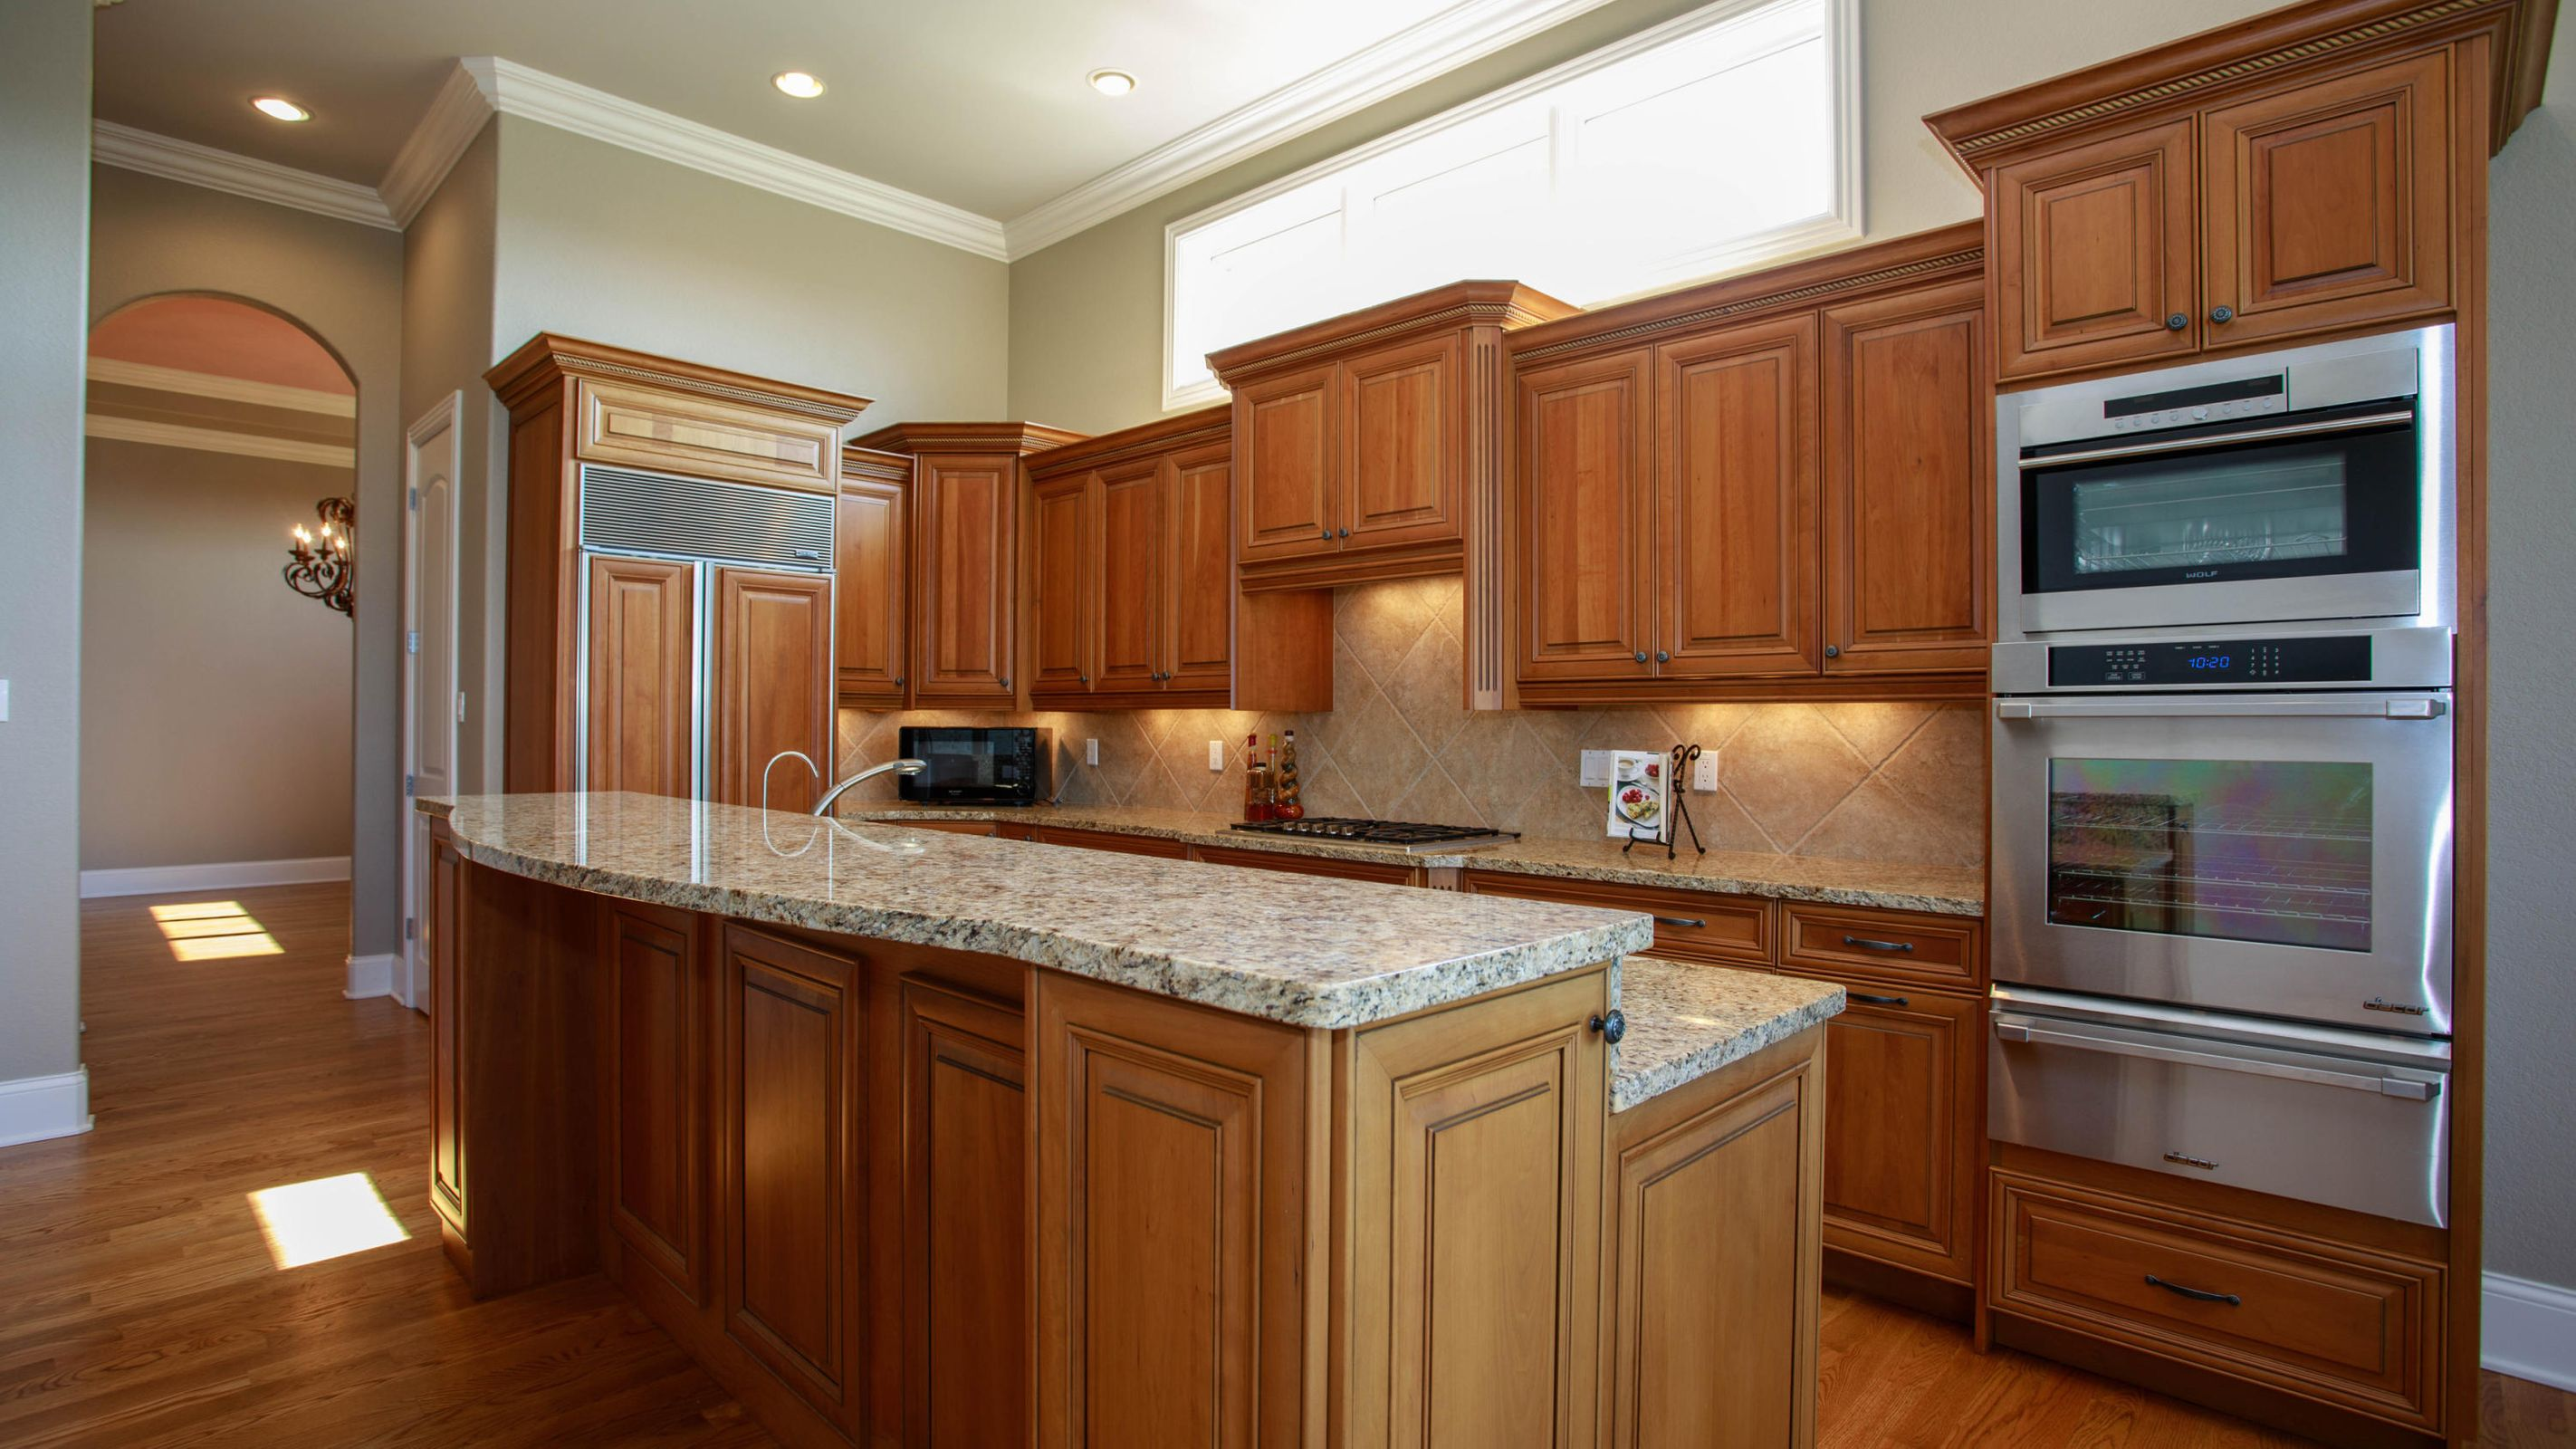 Gourmet kitchen with upgraded appliances